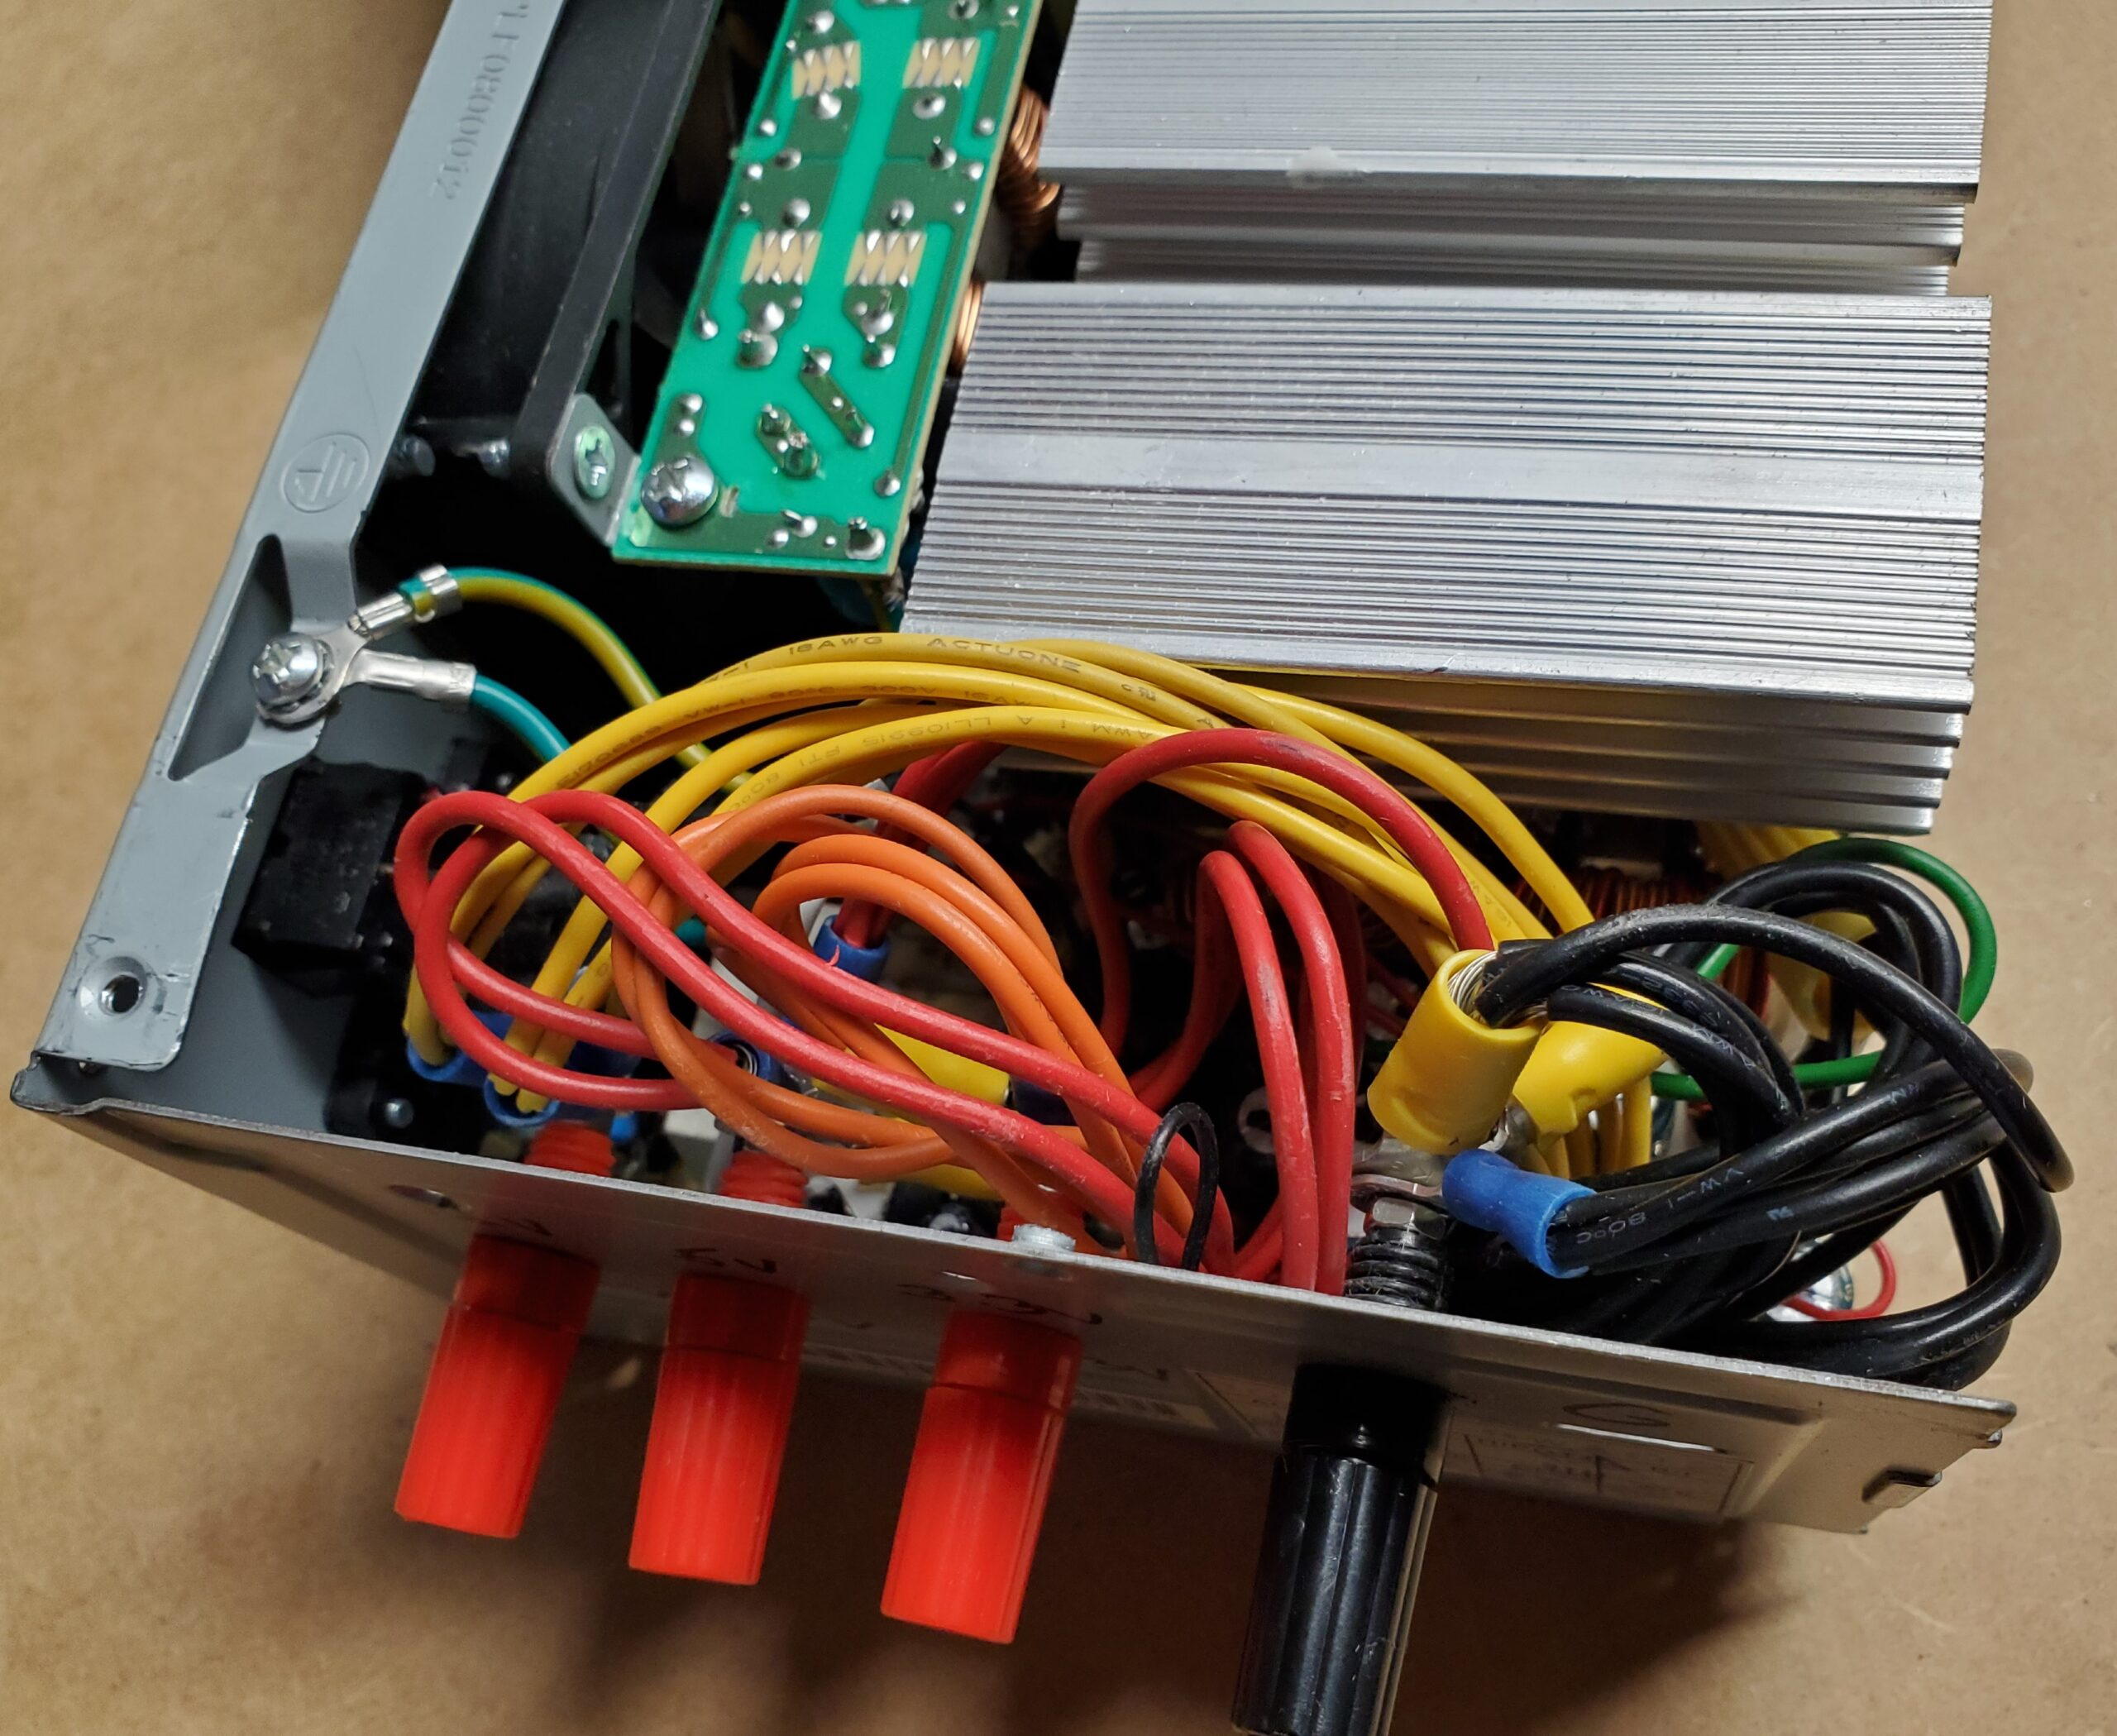 Image of the inside of converted desktop power supply unit